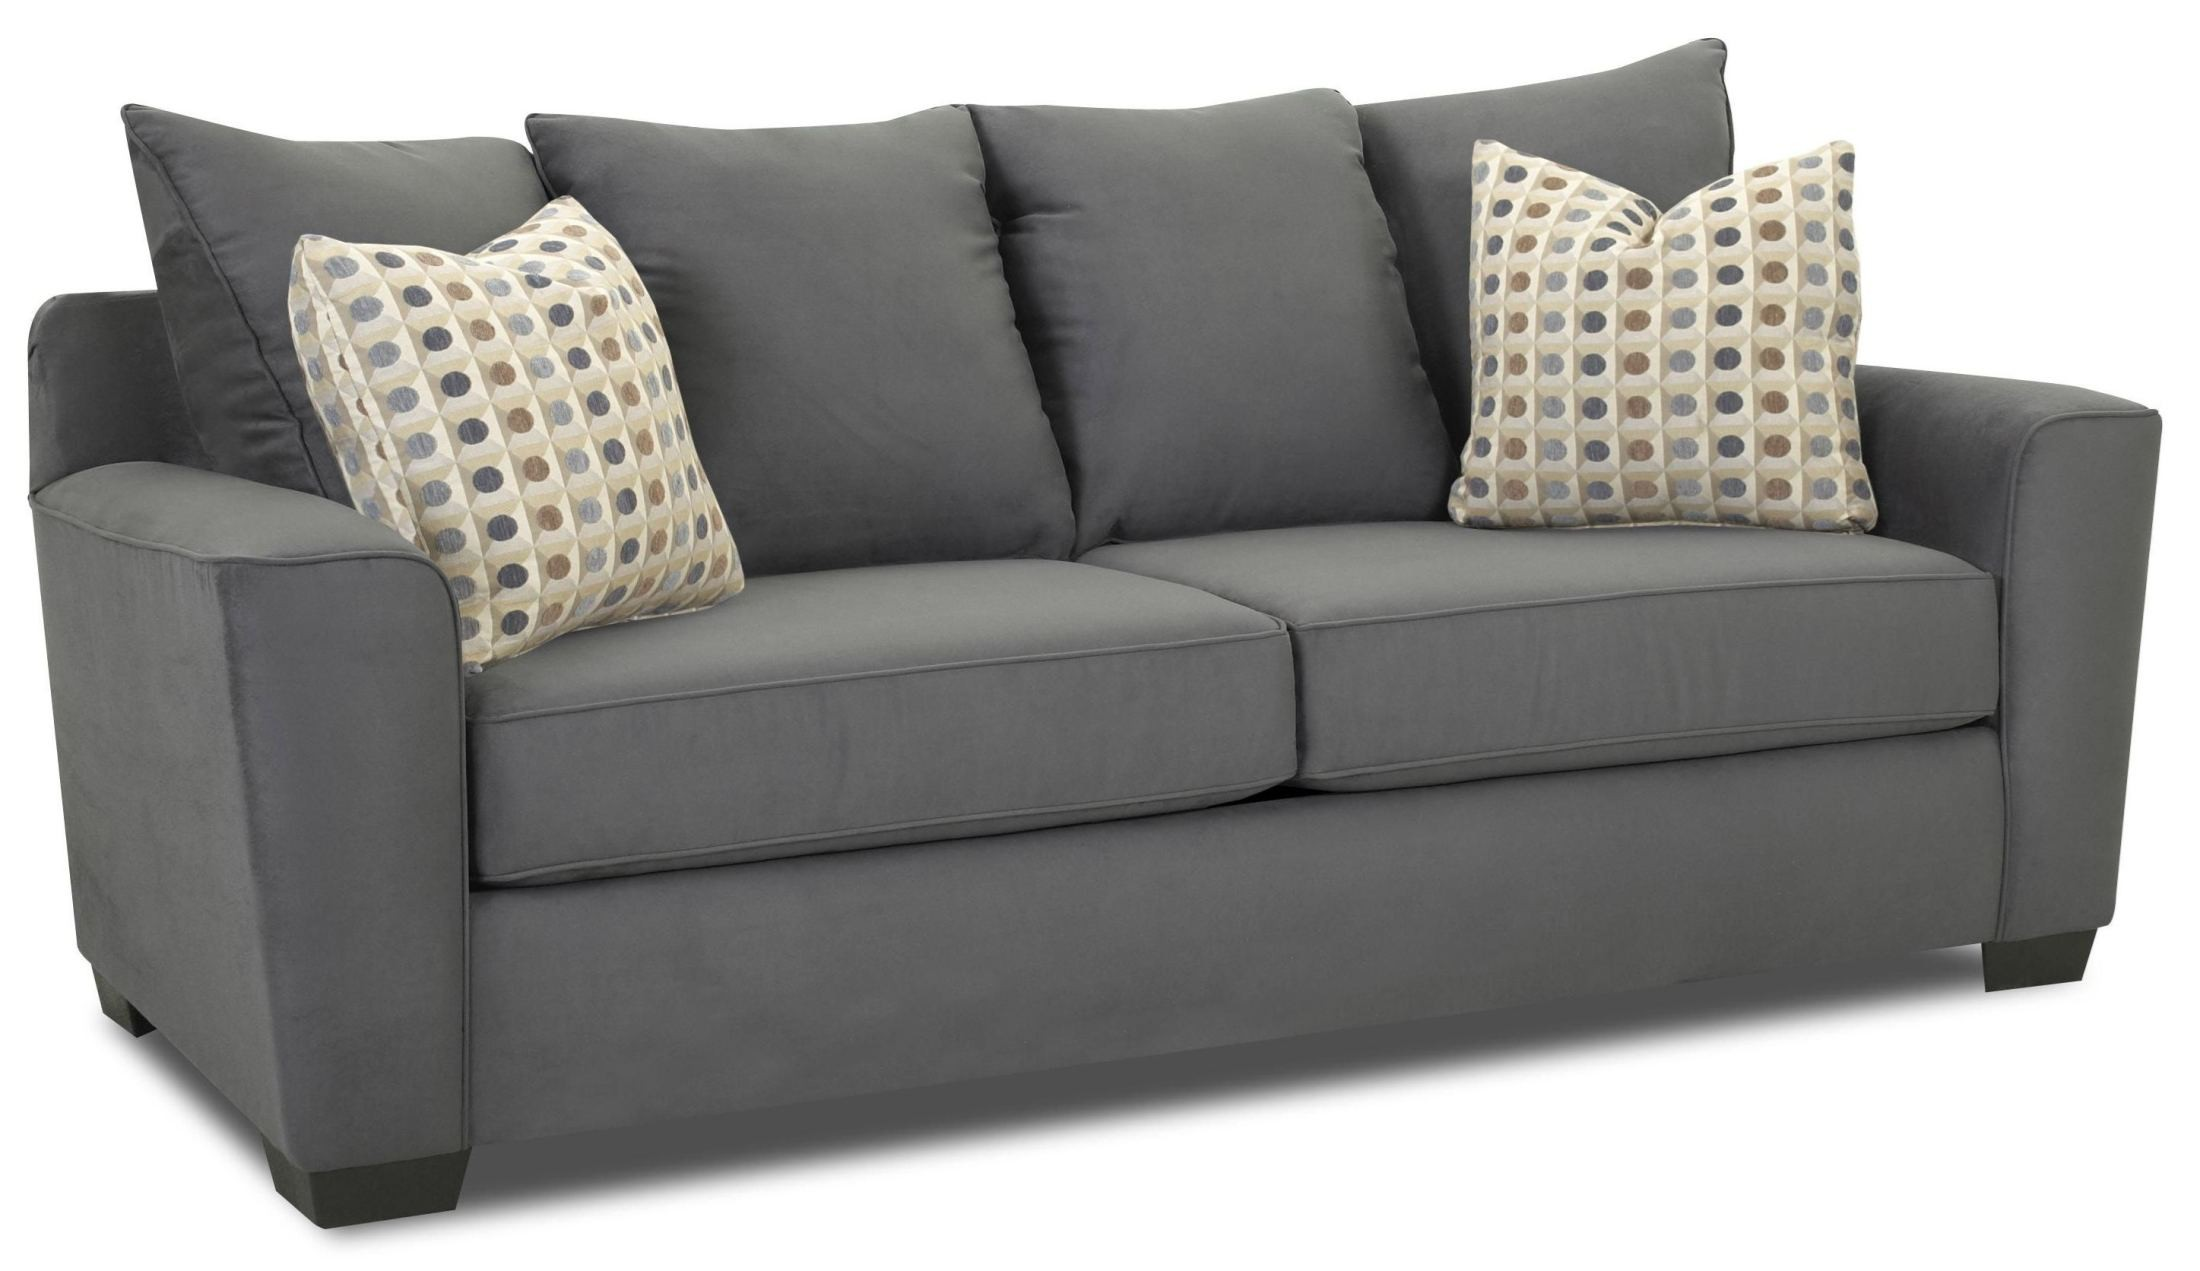 Heather Microsuede Charcoal Sofa E56044 012013129357 Klaussner